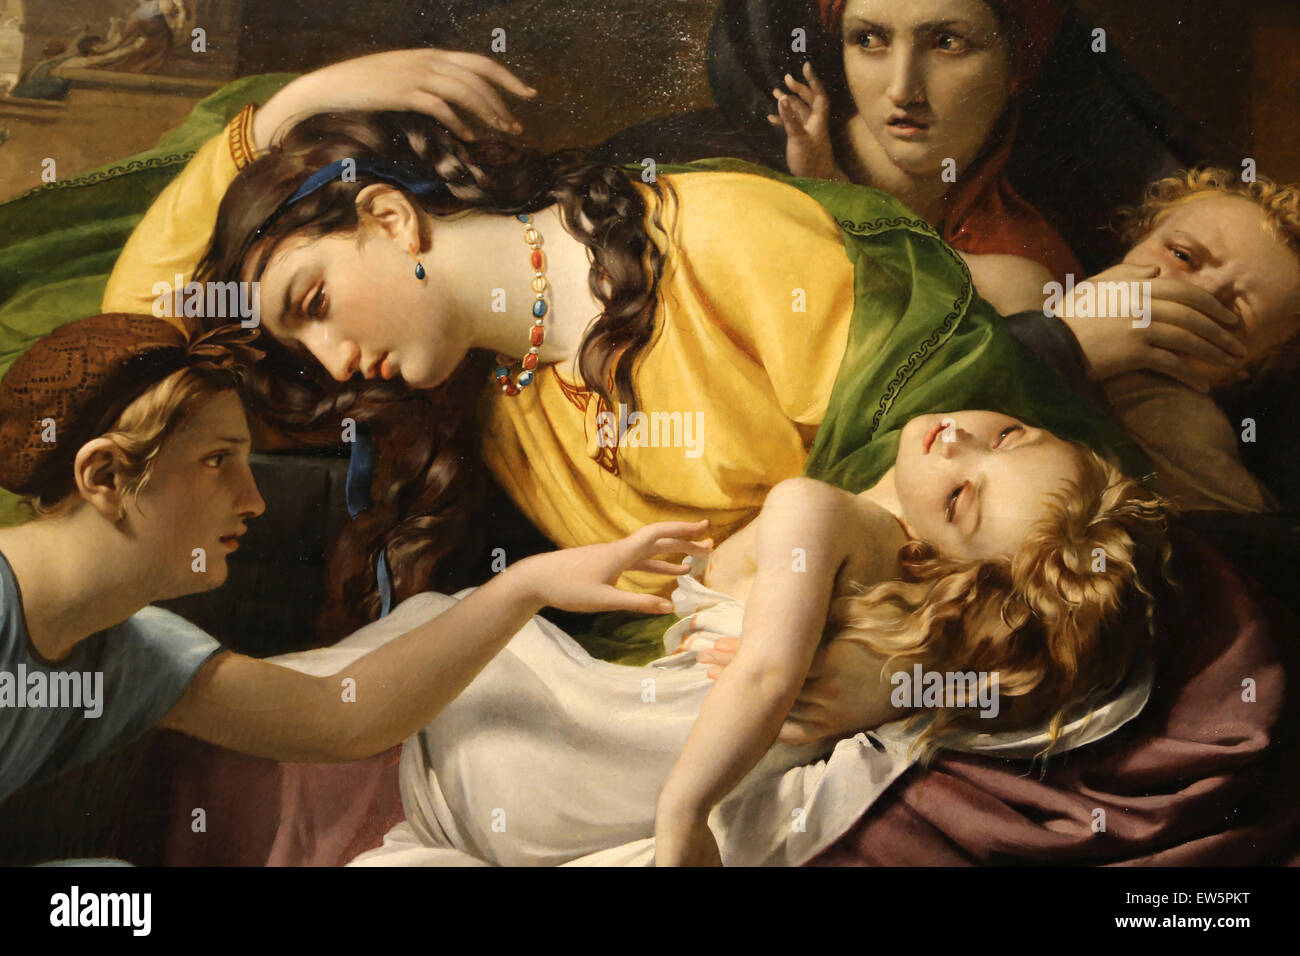 Francois Joseph Navez (1787-1869). The Massacre of the Innocents, 1824. Oil on canvas. Metropolitan Museum of Art. Stock Photo